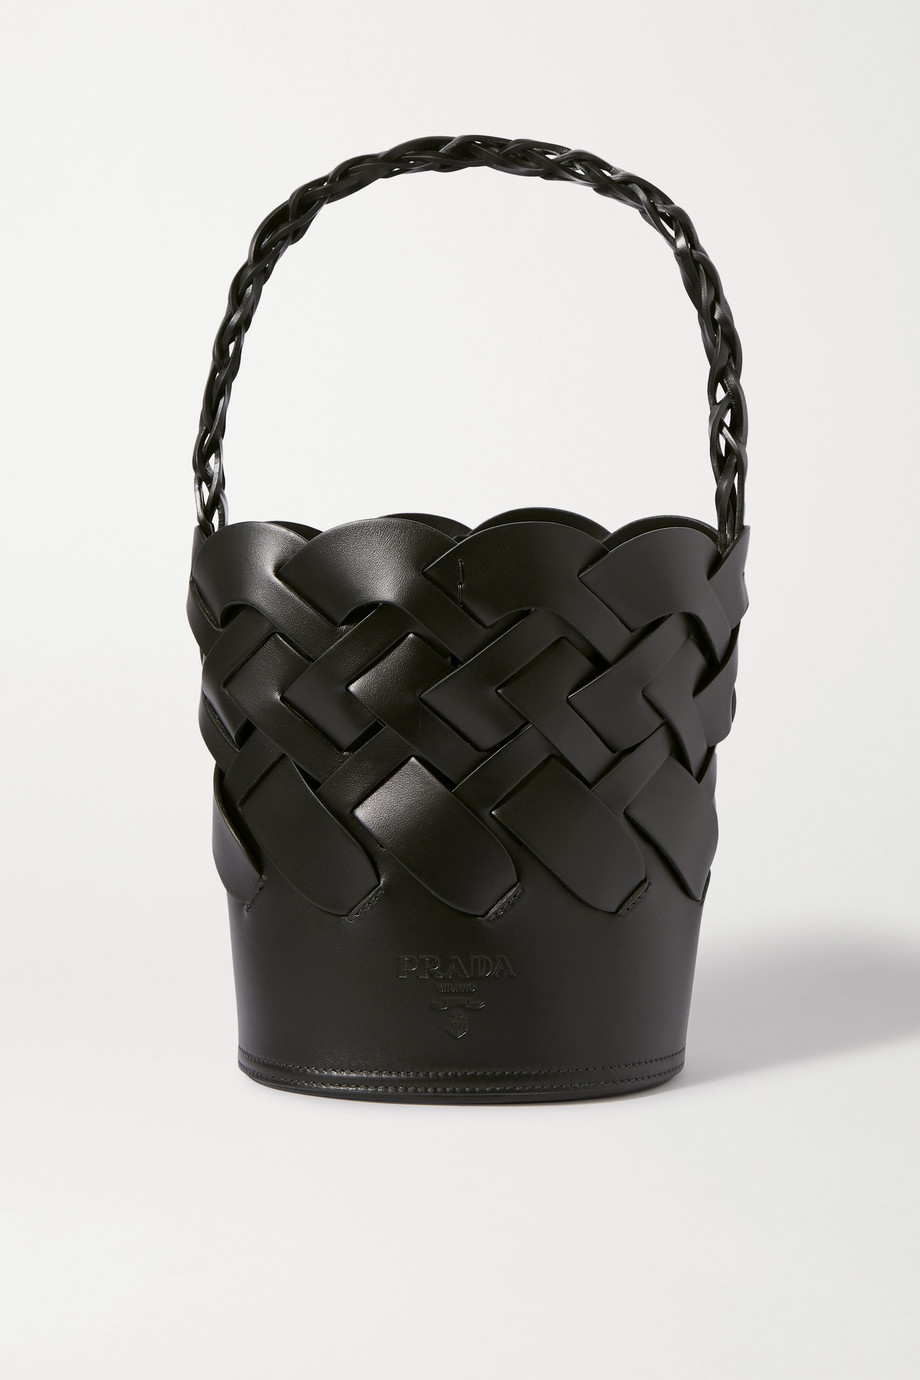 Prada Small woven leather bucket bag